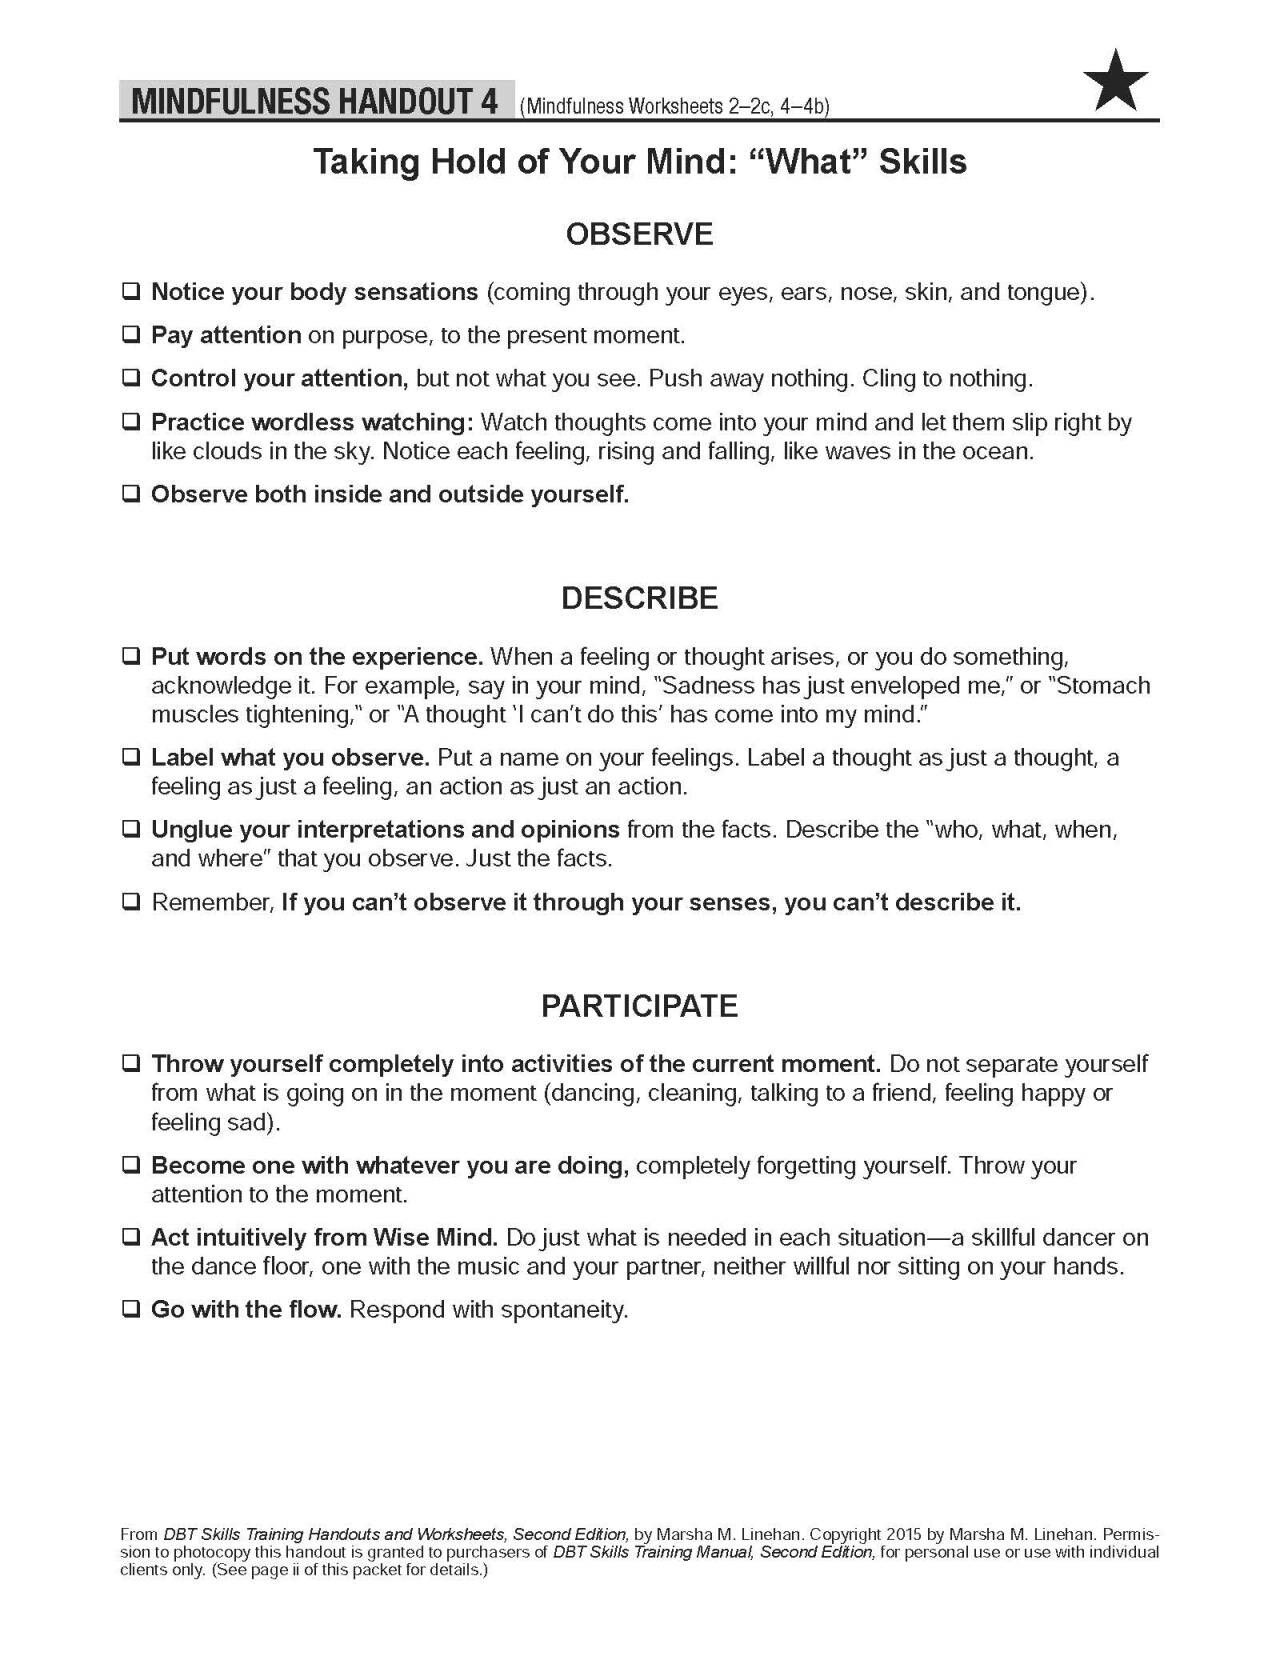 Mindfulness Handout 4 Dbt Skills Counseling Worksheets Group